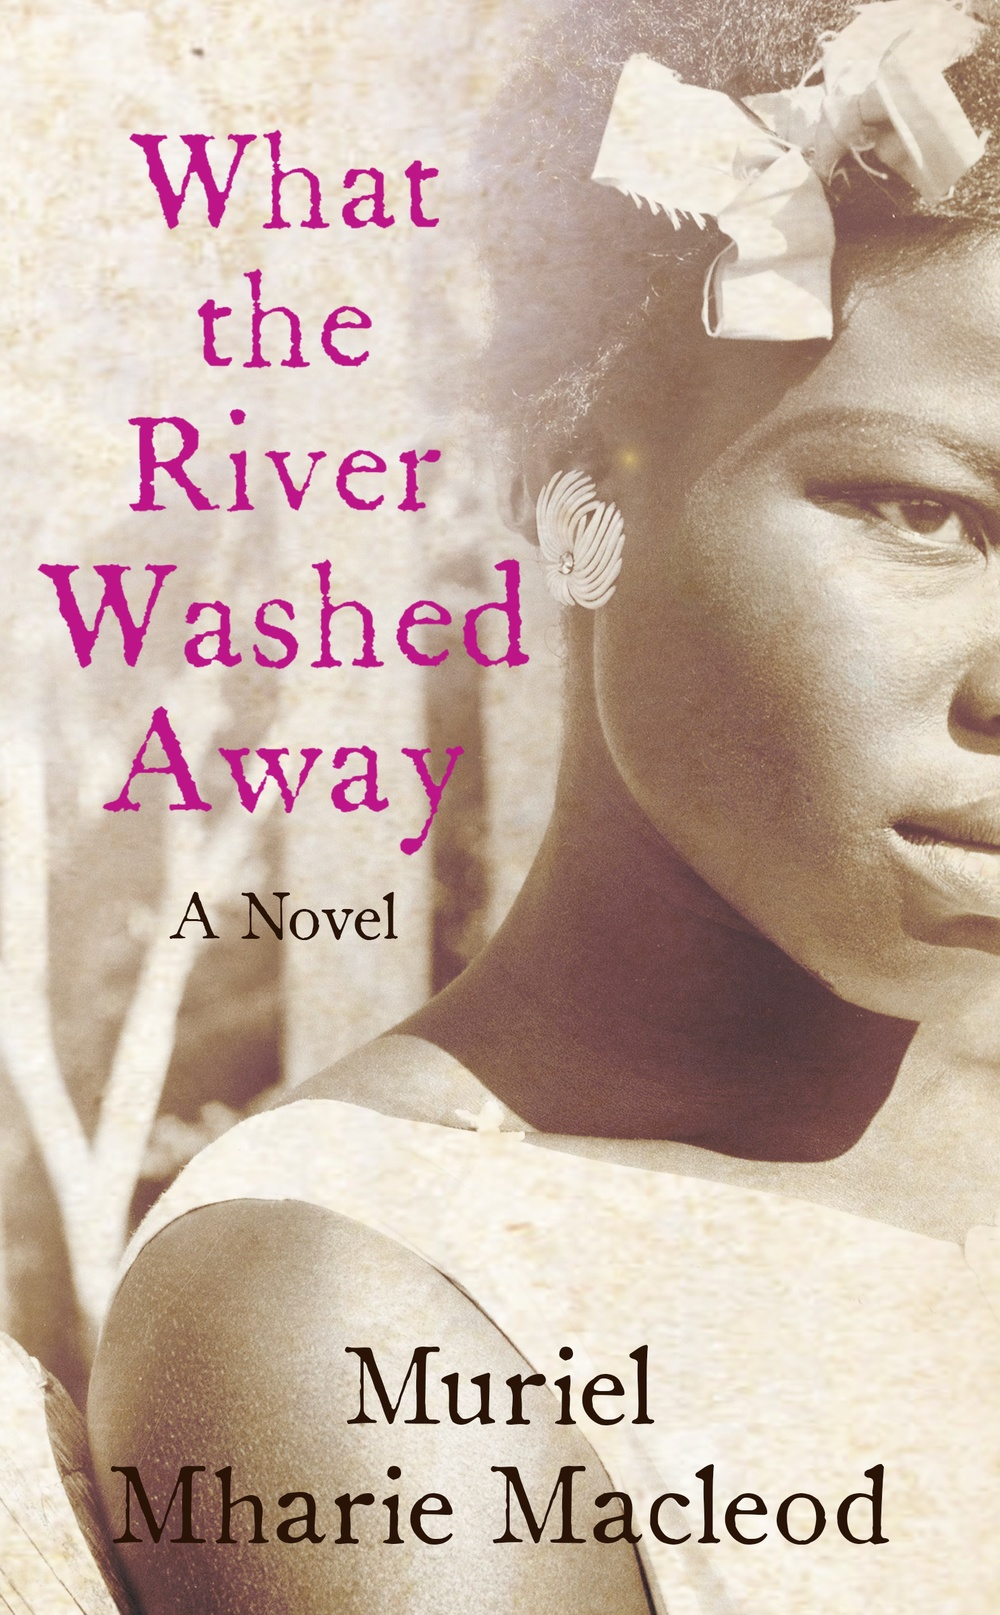 WHAT THE RIVER WASHED AWAY Novel Oneworld Publications - 6 June 2013.